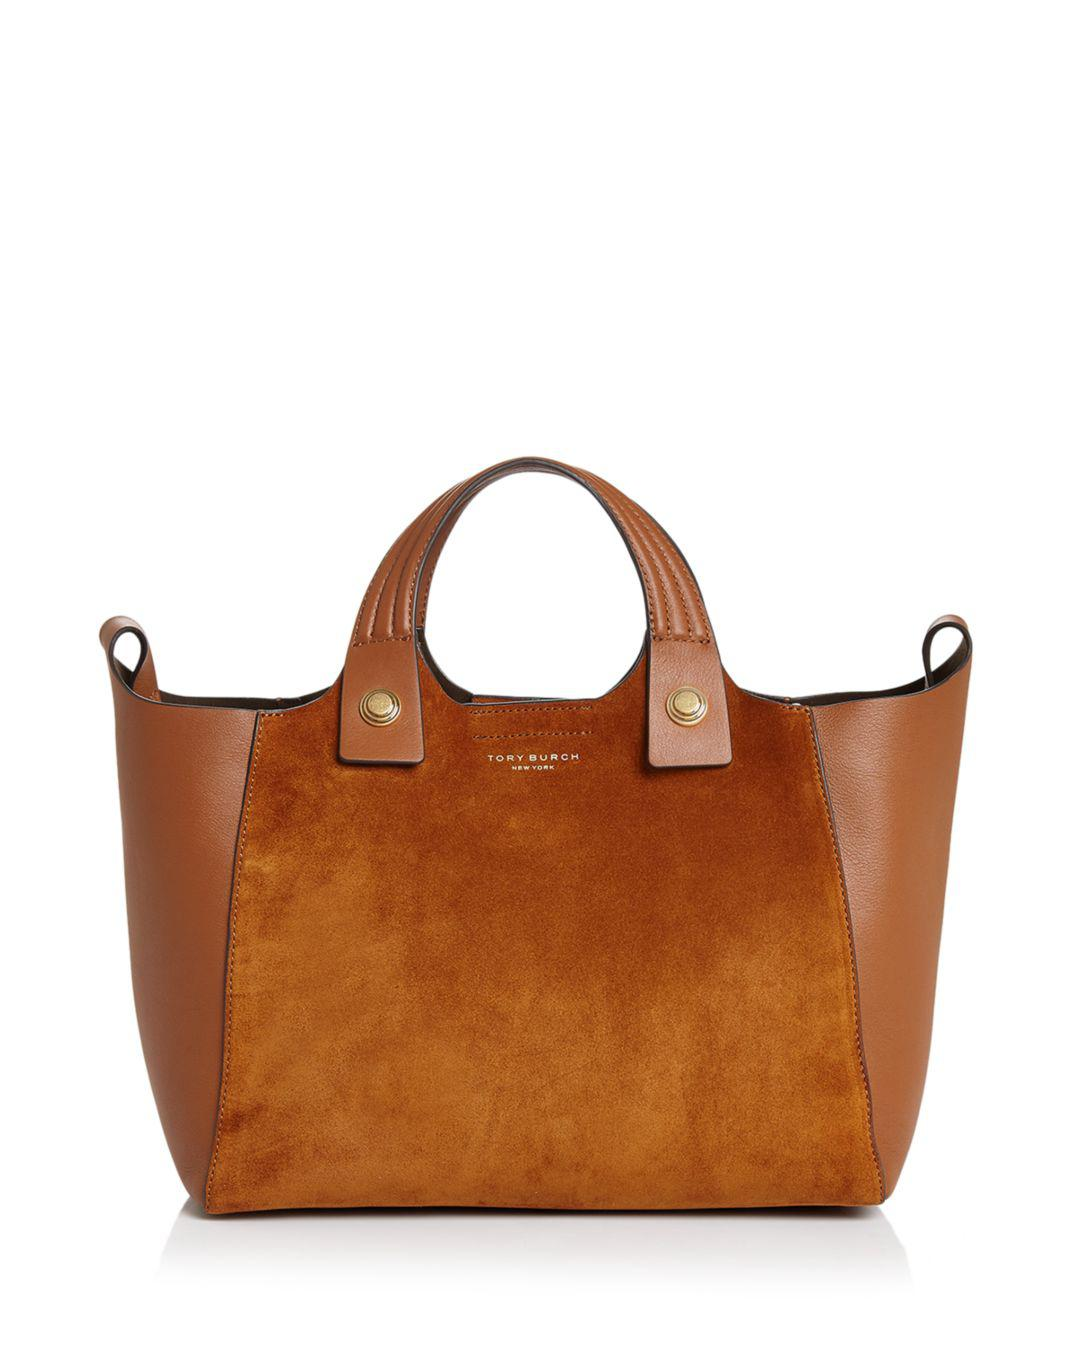 890ede3d6d23 Tory Burch - Brown Rory Mini Suede   Leather Tote - Lyst. View fullscreen